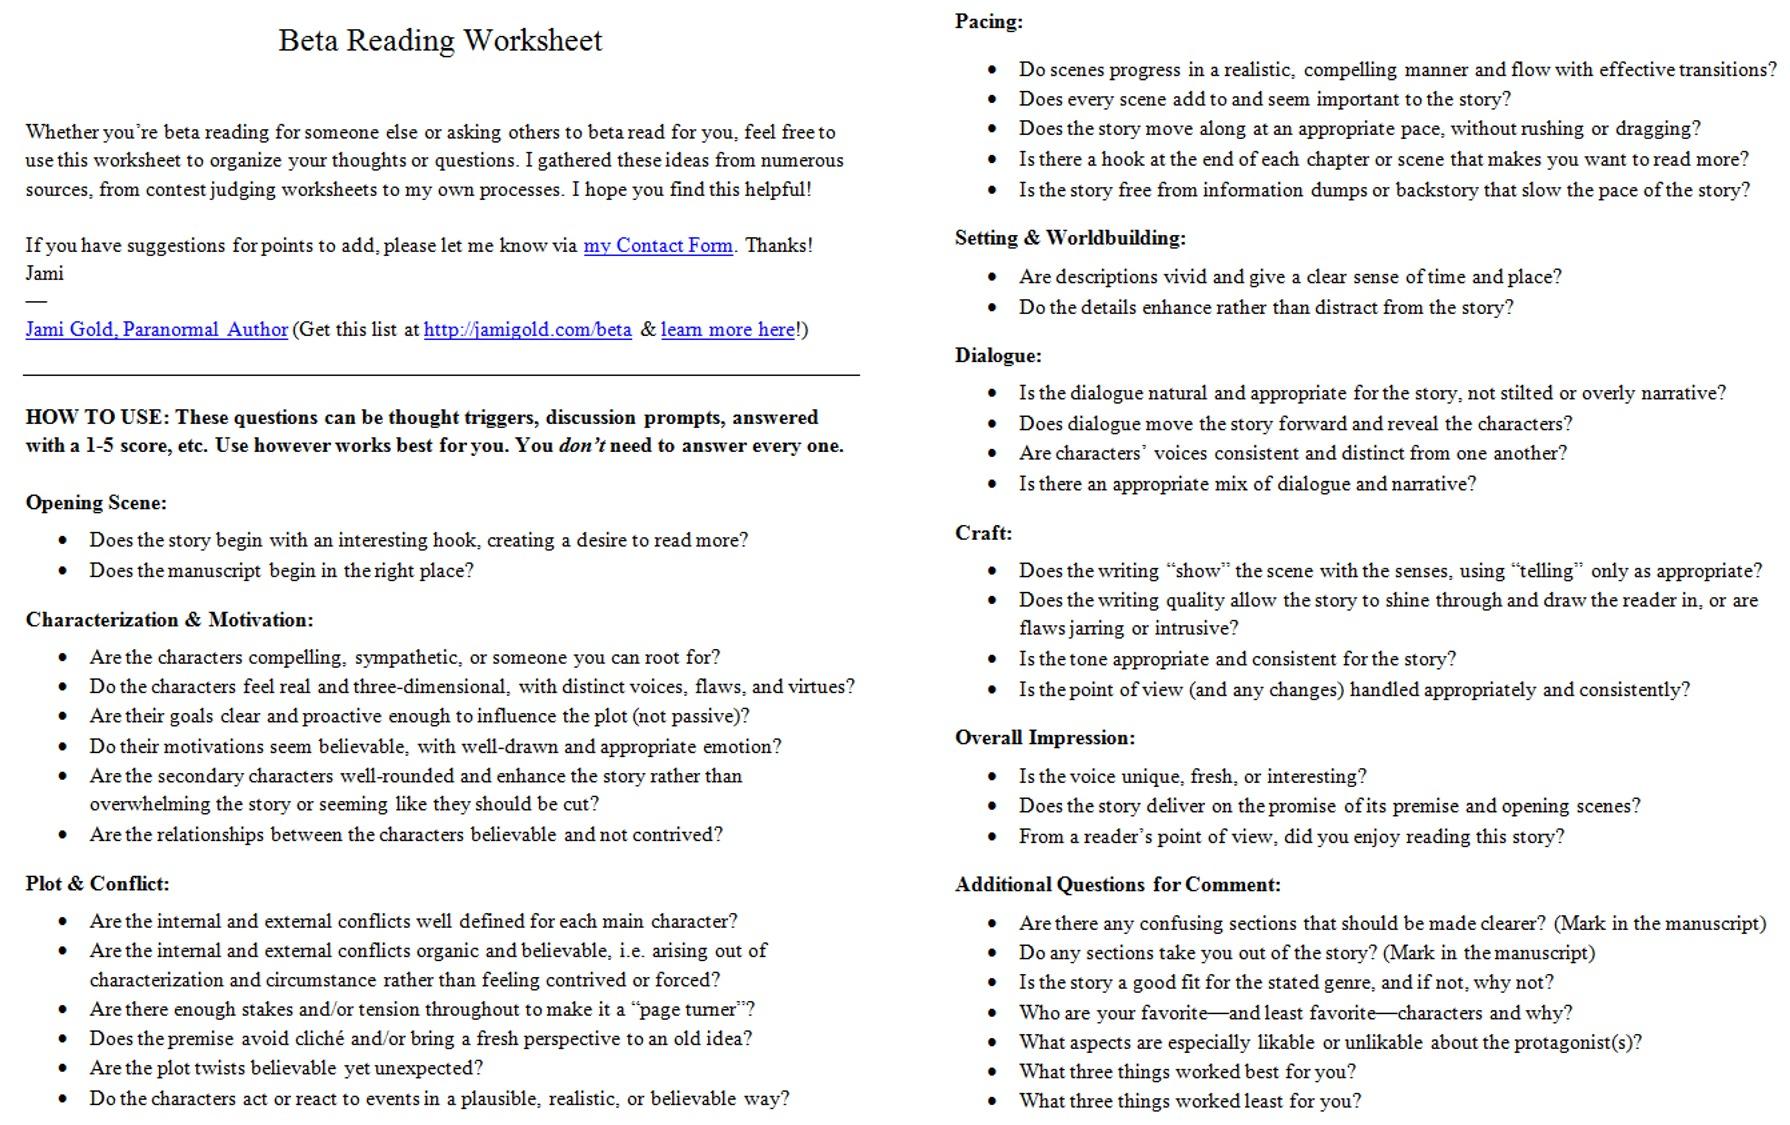 Aldiablosus  Ravishing Worksheets For Writers  Jami Gold Paranormal Author With Glamorous Screen Shot Of The Twopage Beta Reading Worksheet With Astonishing New Worksheet Vba Also Diagramming Prepositional Phrases Worksheet In Addition Maps And Scale Drawings Worksheet And Nd Grade Pictograph Worksheets As Well As Worksheets For Preschoolers Free Printables Additionally Monthly Expense Worksheet Excel From Jamigoldcom With Aldiablosus  Glamorous Worksheets For Writers  Jami Gold Paranormal Author With Astonishing Screen Shot Of The Twopage Beta Reading Worksheet And Ravishing New Worksheet Vba Also Diagramming Prepositional Phrases Worksheet In Addition Maps And Scale Drawings Worksheet From Jamigoldcom